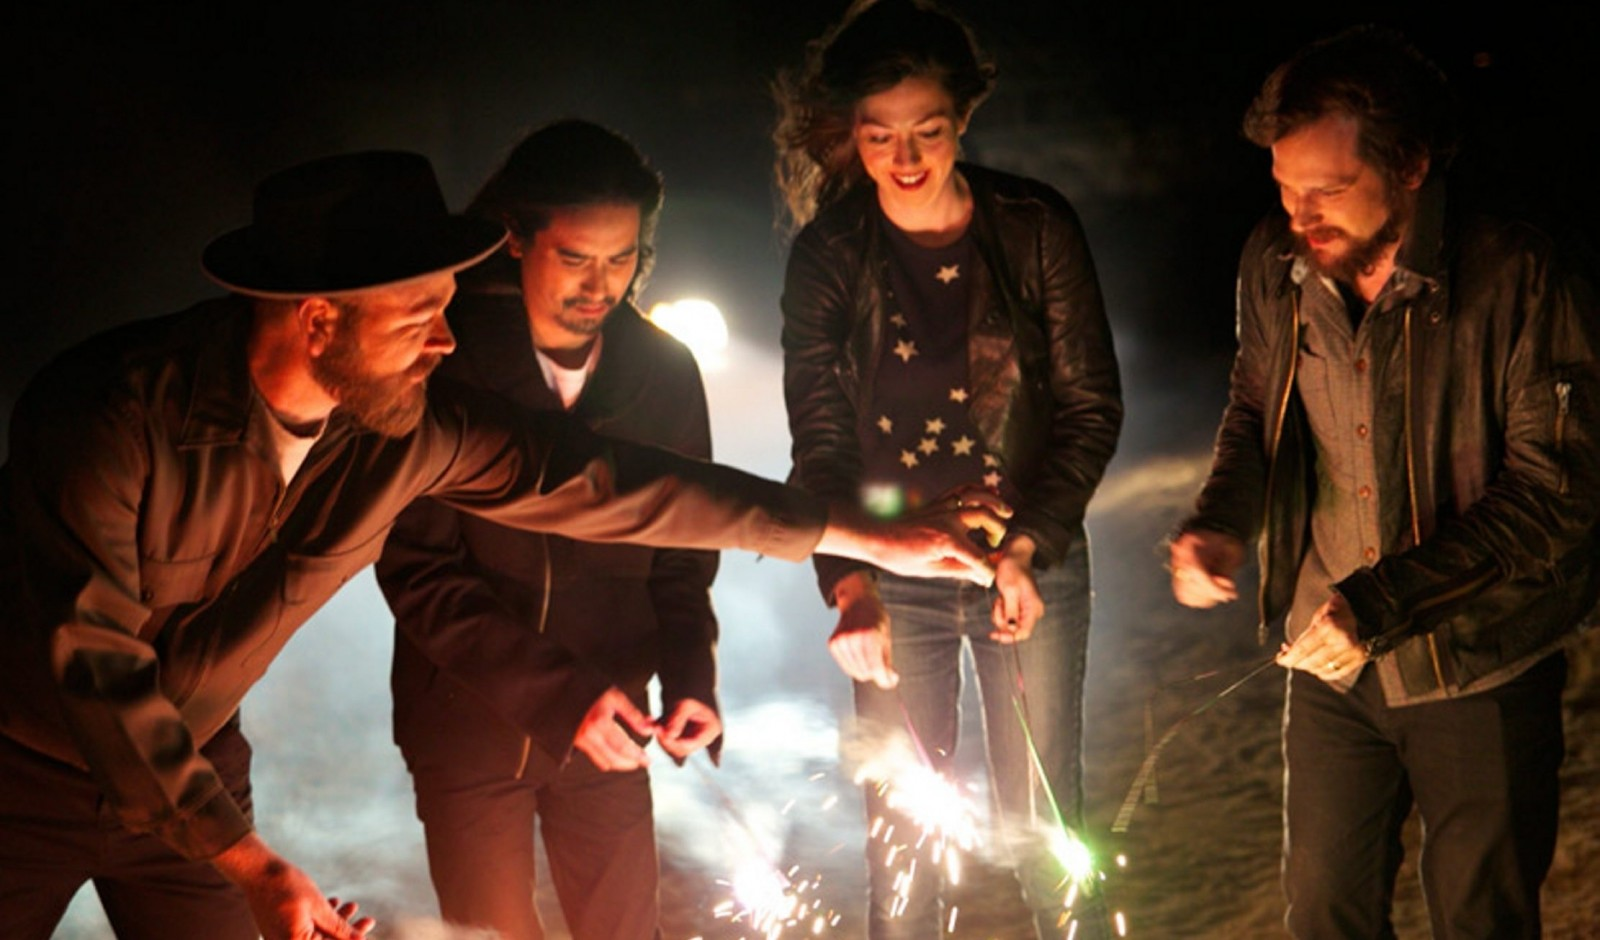 Silversun Pickups perform March 28 as part of Spring Fling. Jeff Miers interviews Nikki Monninger, third from the left.